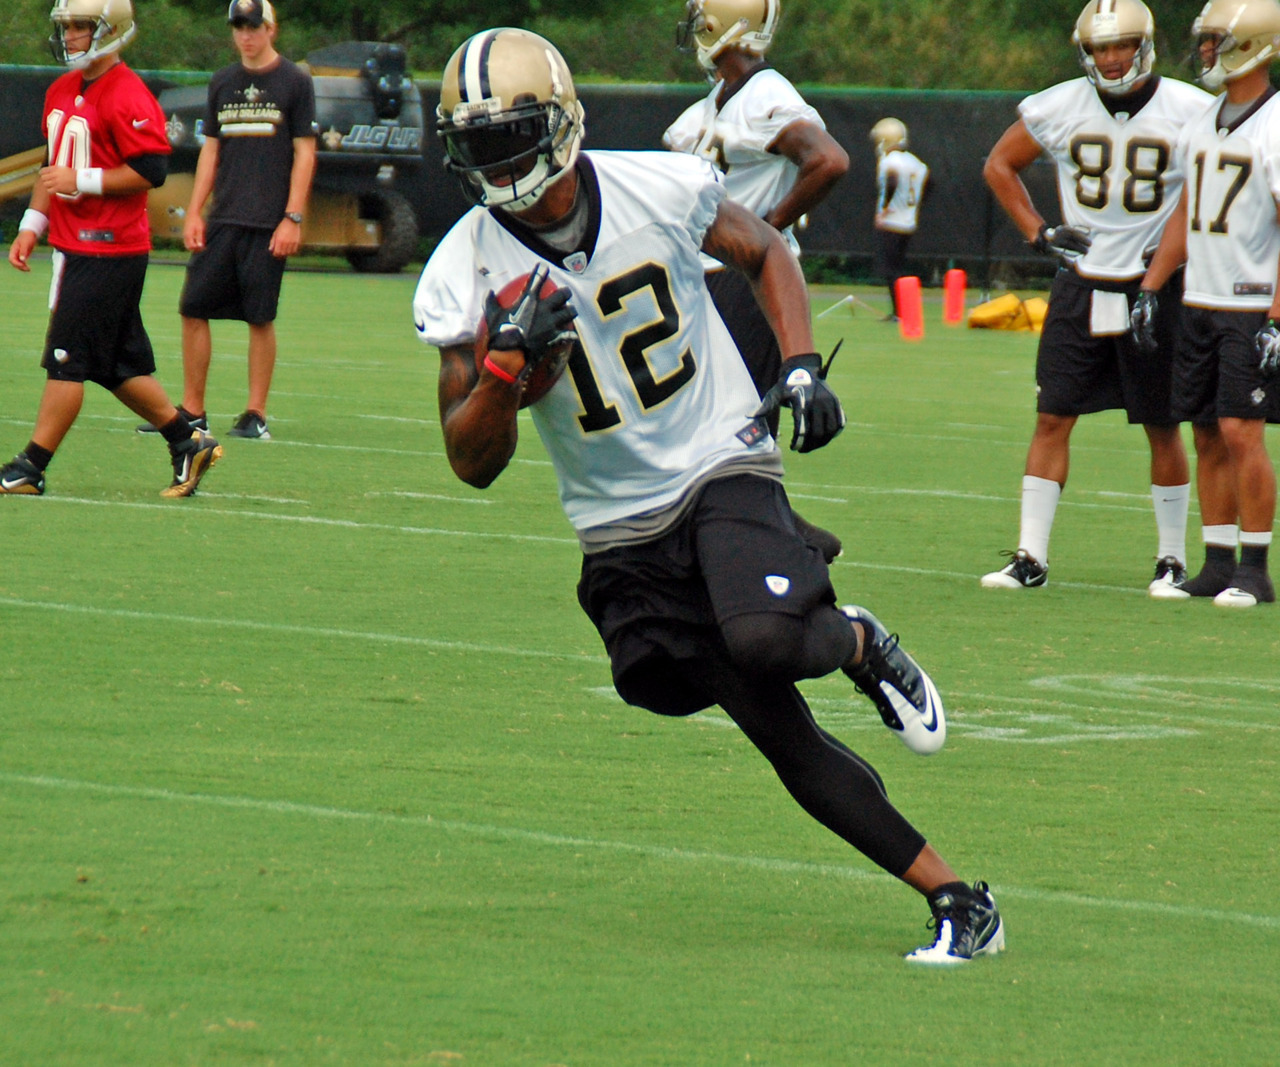 neworleanssaints:  WR Marques Colston at practice today!